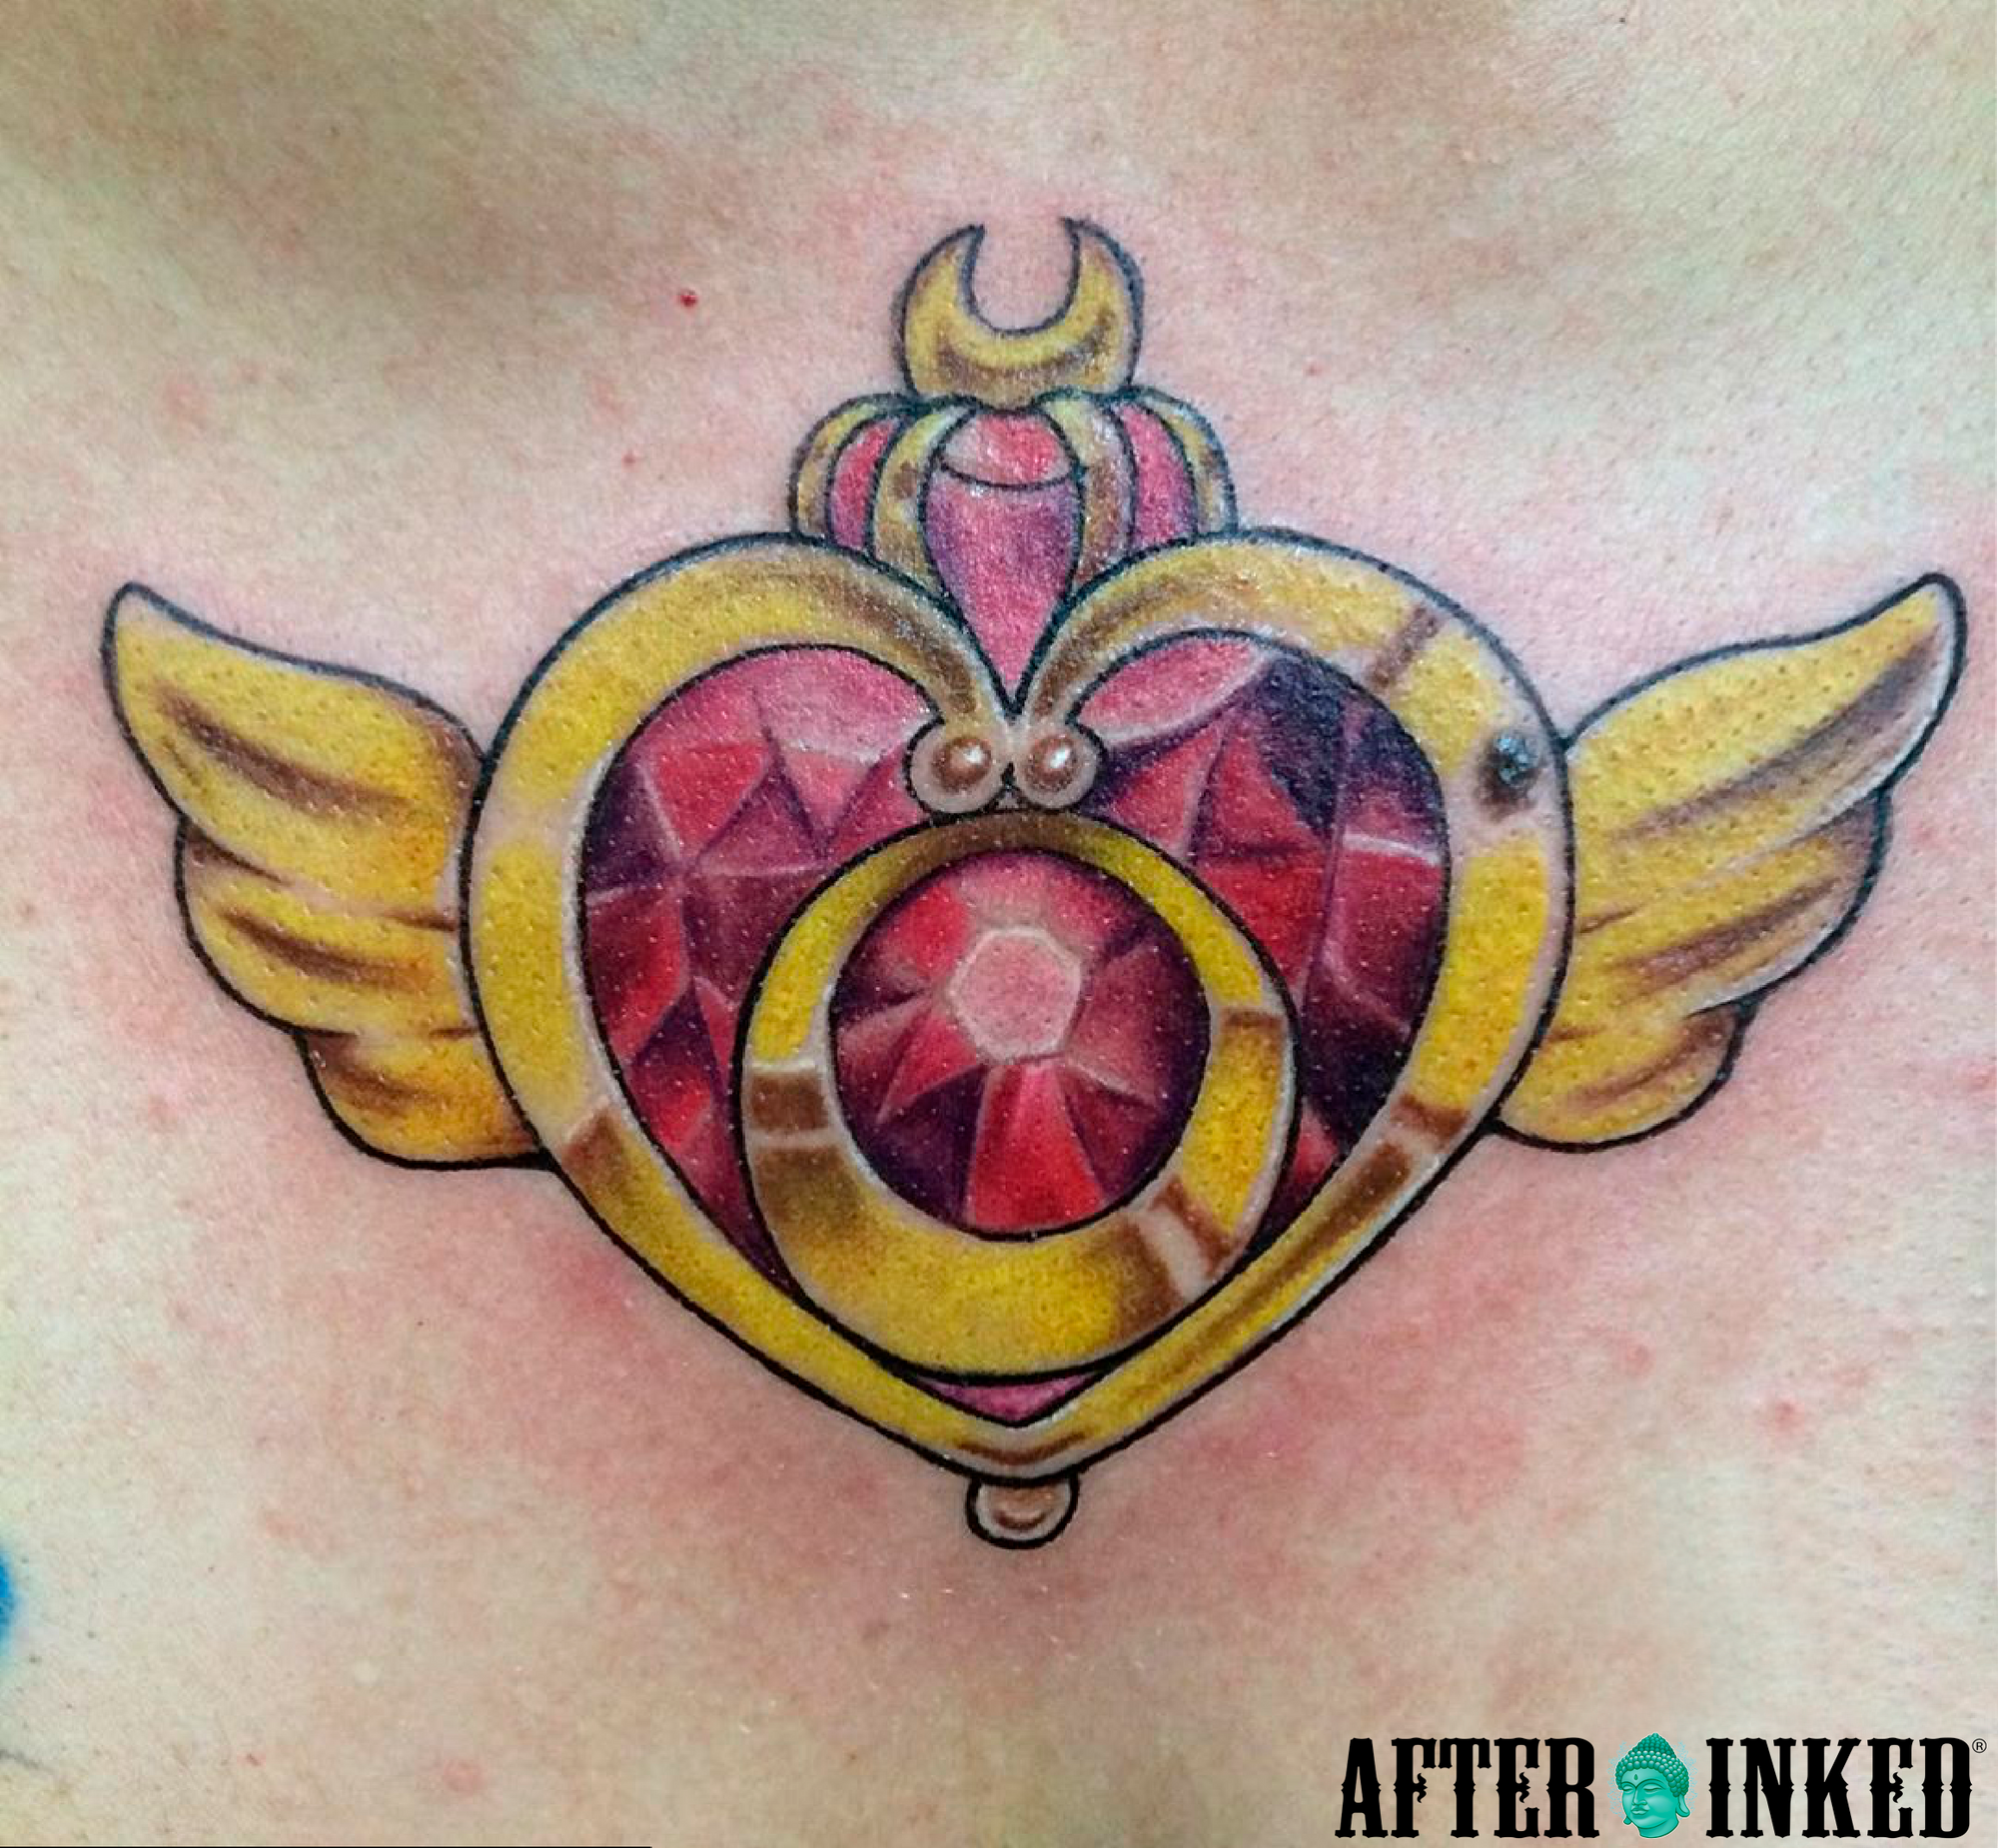 Jewelry always fits #TransformationTuesday #piercingsn #piercingaftercare #afterinked #proudusers #formulatedforperfection #afterinkedeveryday #tattooaftercare #piercingaftercare #inkseal #npj #vegan #fashion #style #jewellery #handmade #accessories #gold #beautiful #bodypiercing #jewelry #piercings #girlswithpiercings #quality #bodymodification